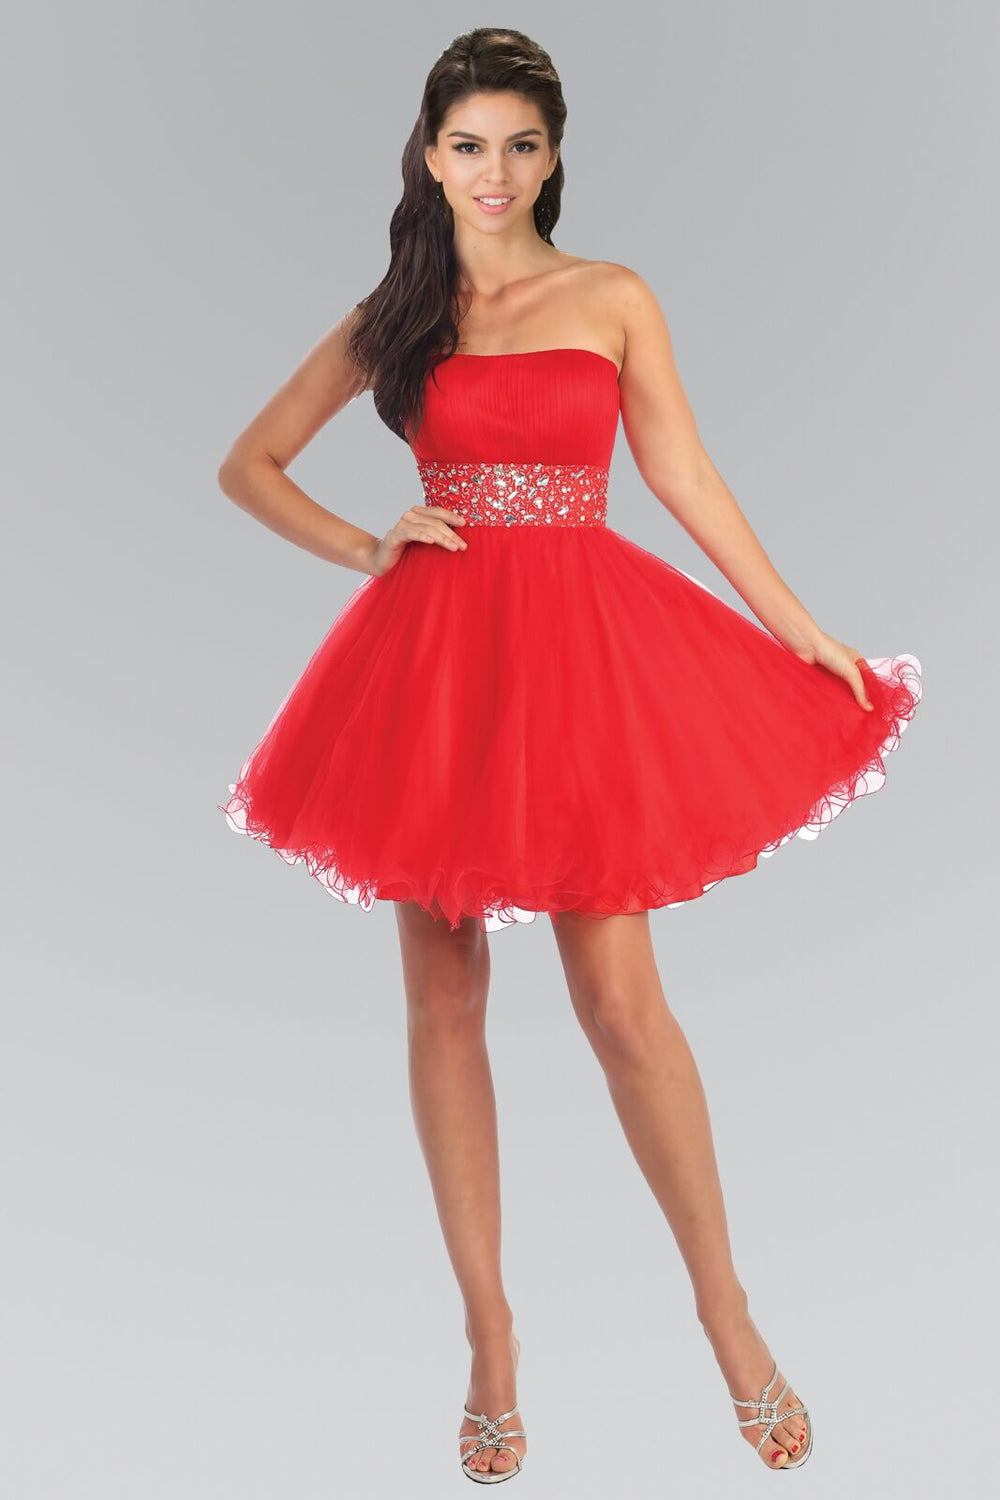 Strapless Sweetheart Prom Short Dress - The Dress Outlet Red